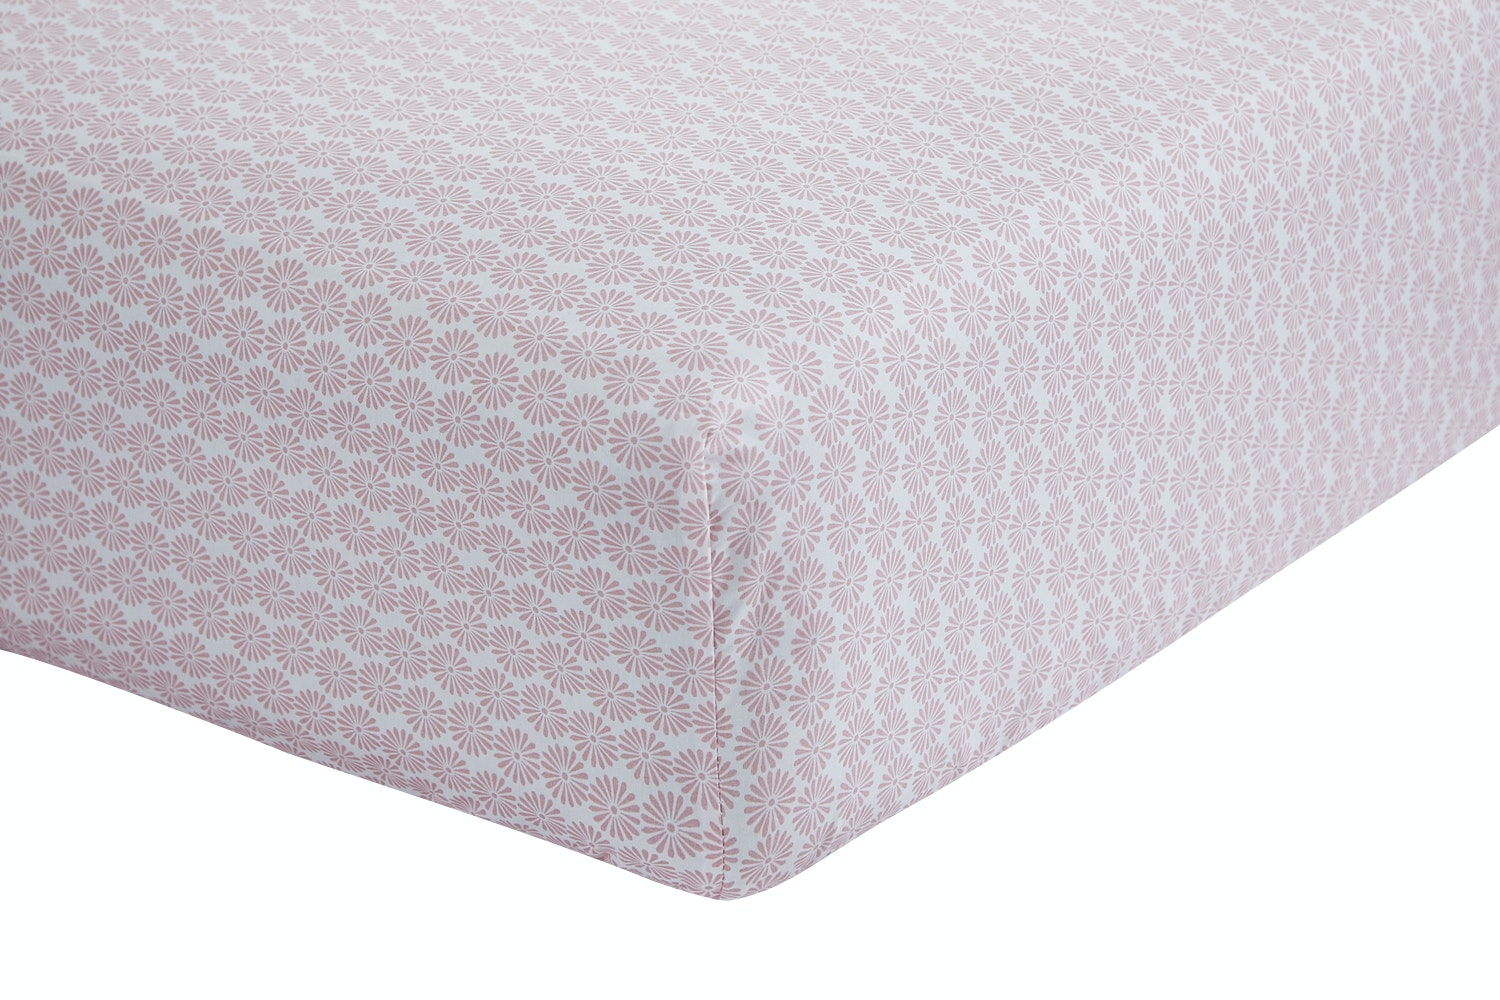 Ditsy Cotton Print Blush Fitted Sheet | Single